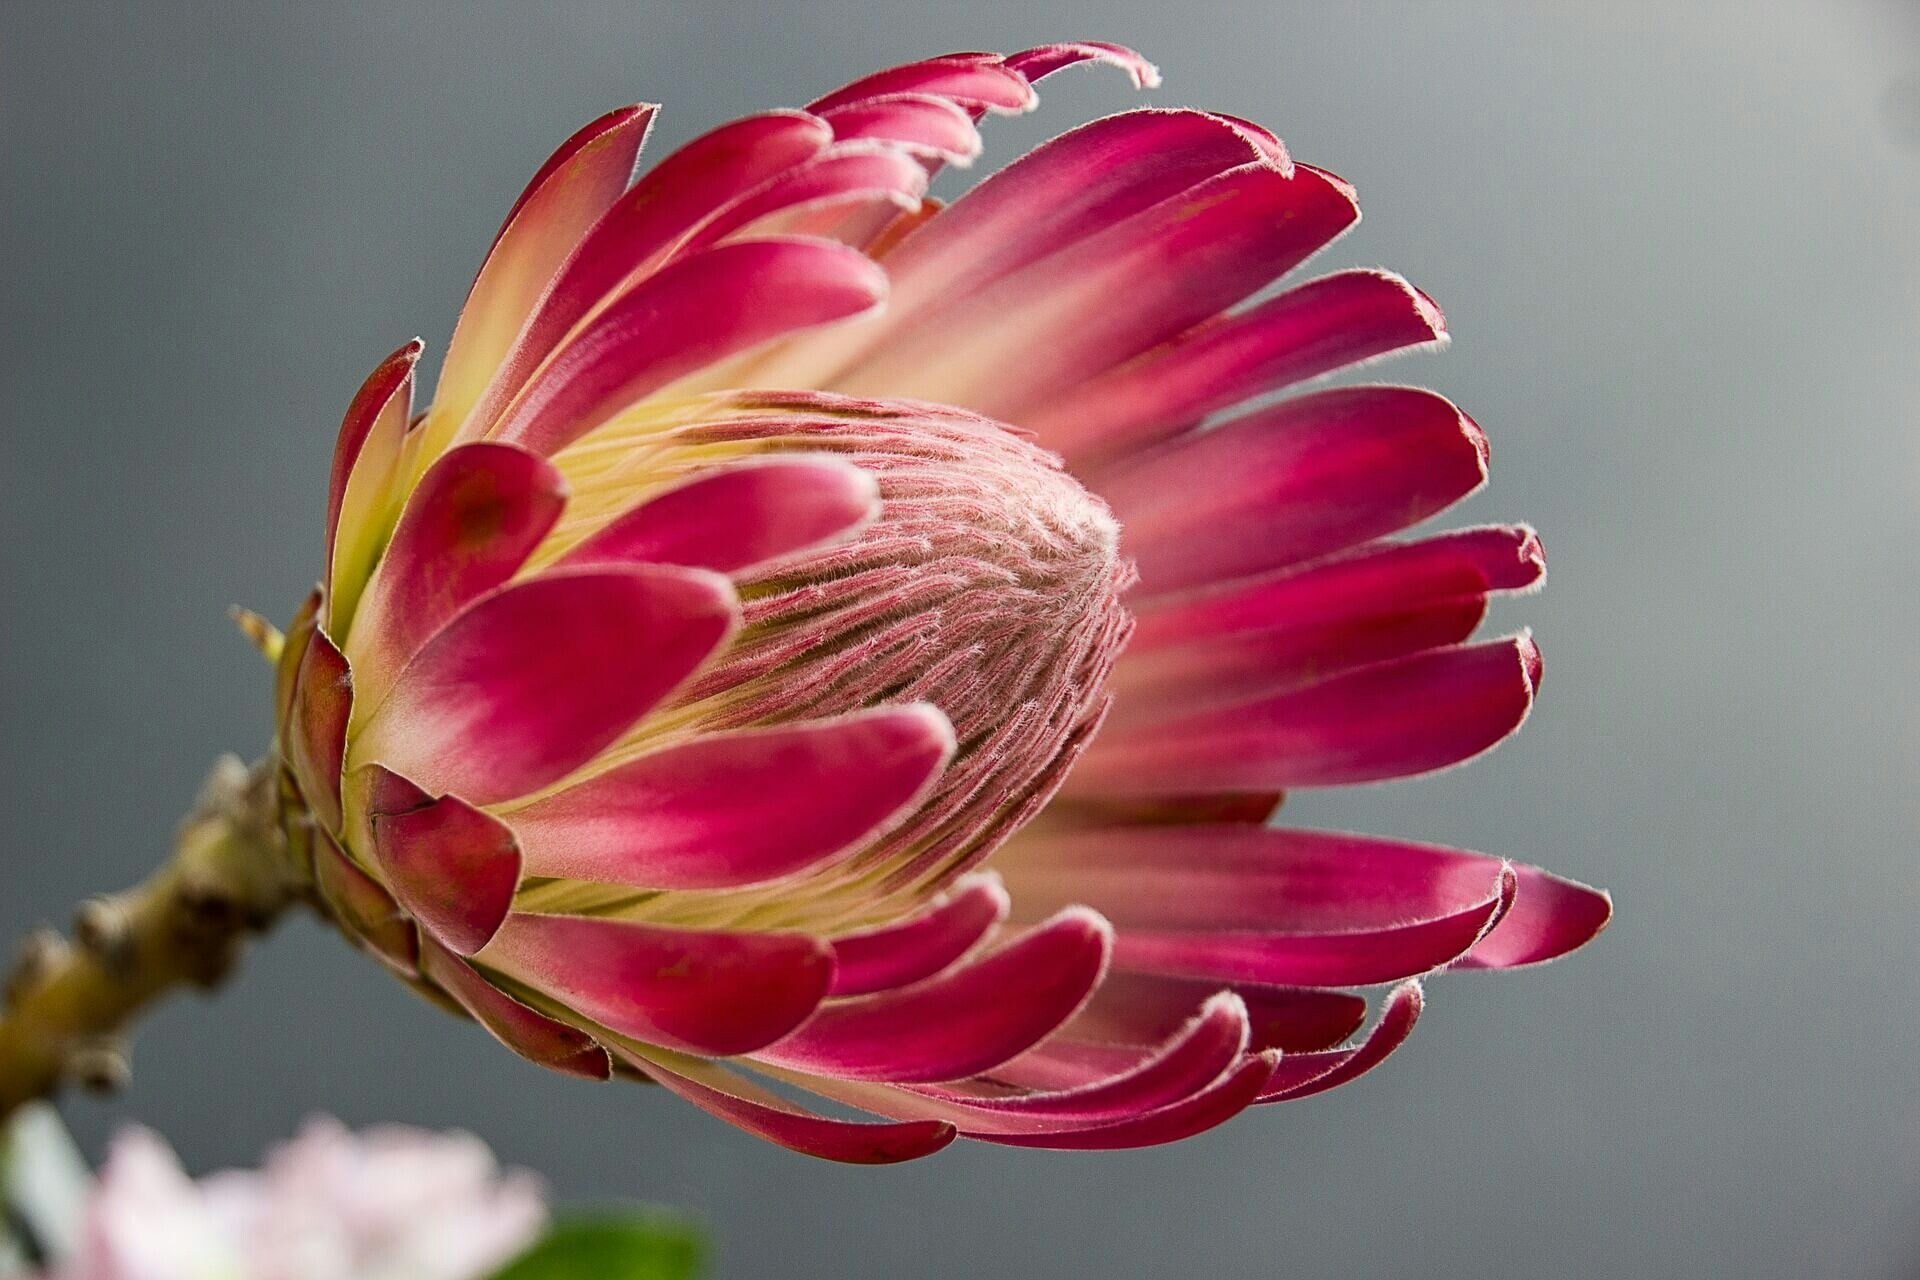 Hd Wallpapers Backgrounds Protea Flower Protea Flowers